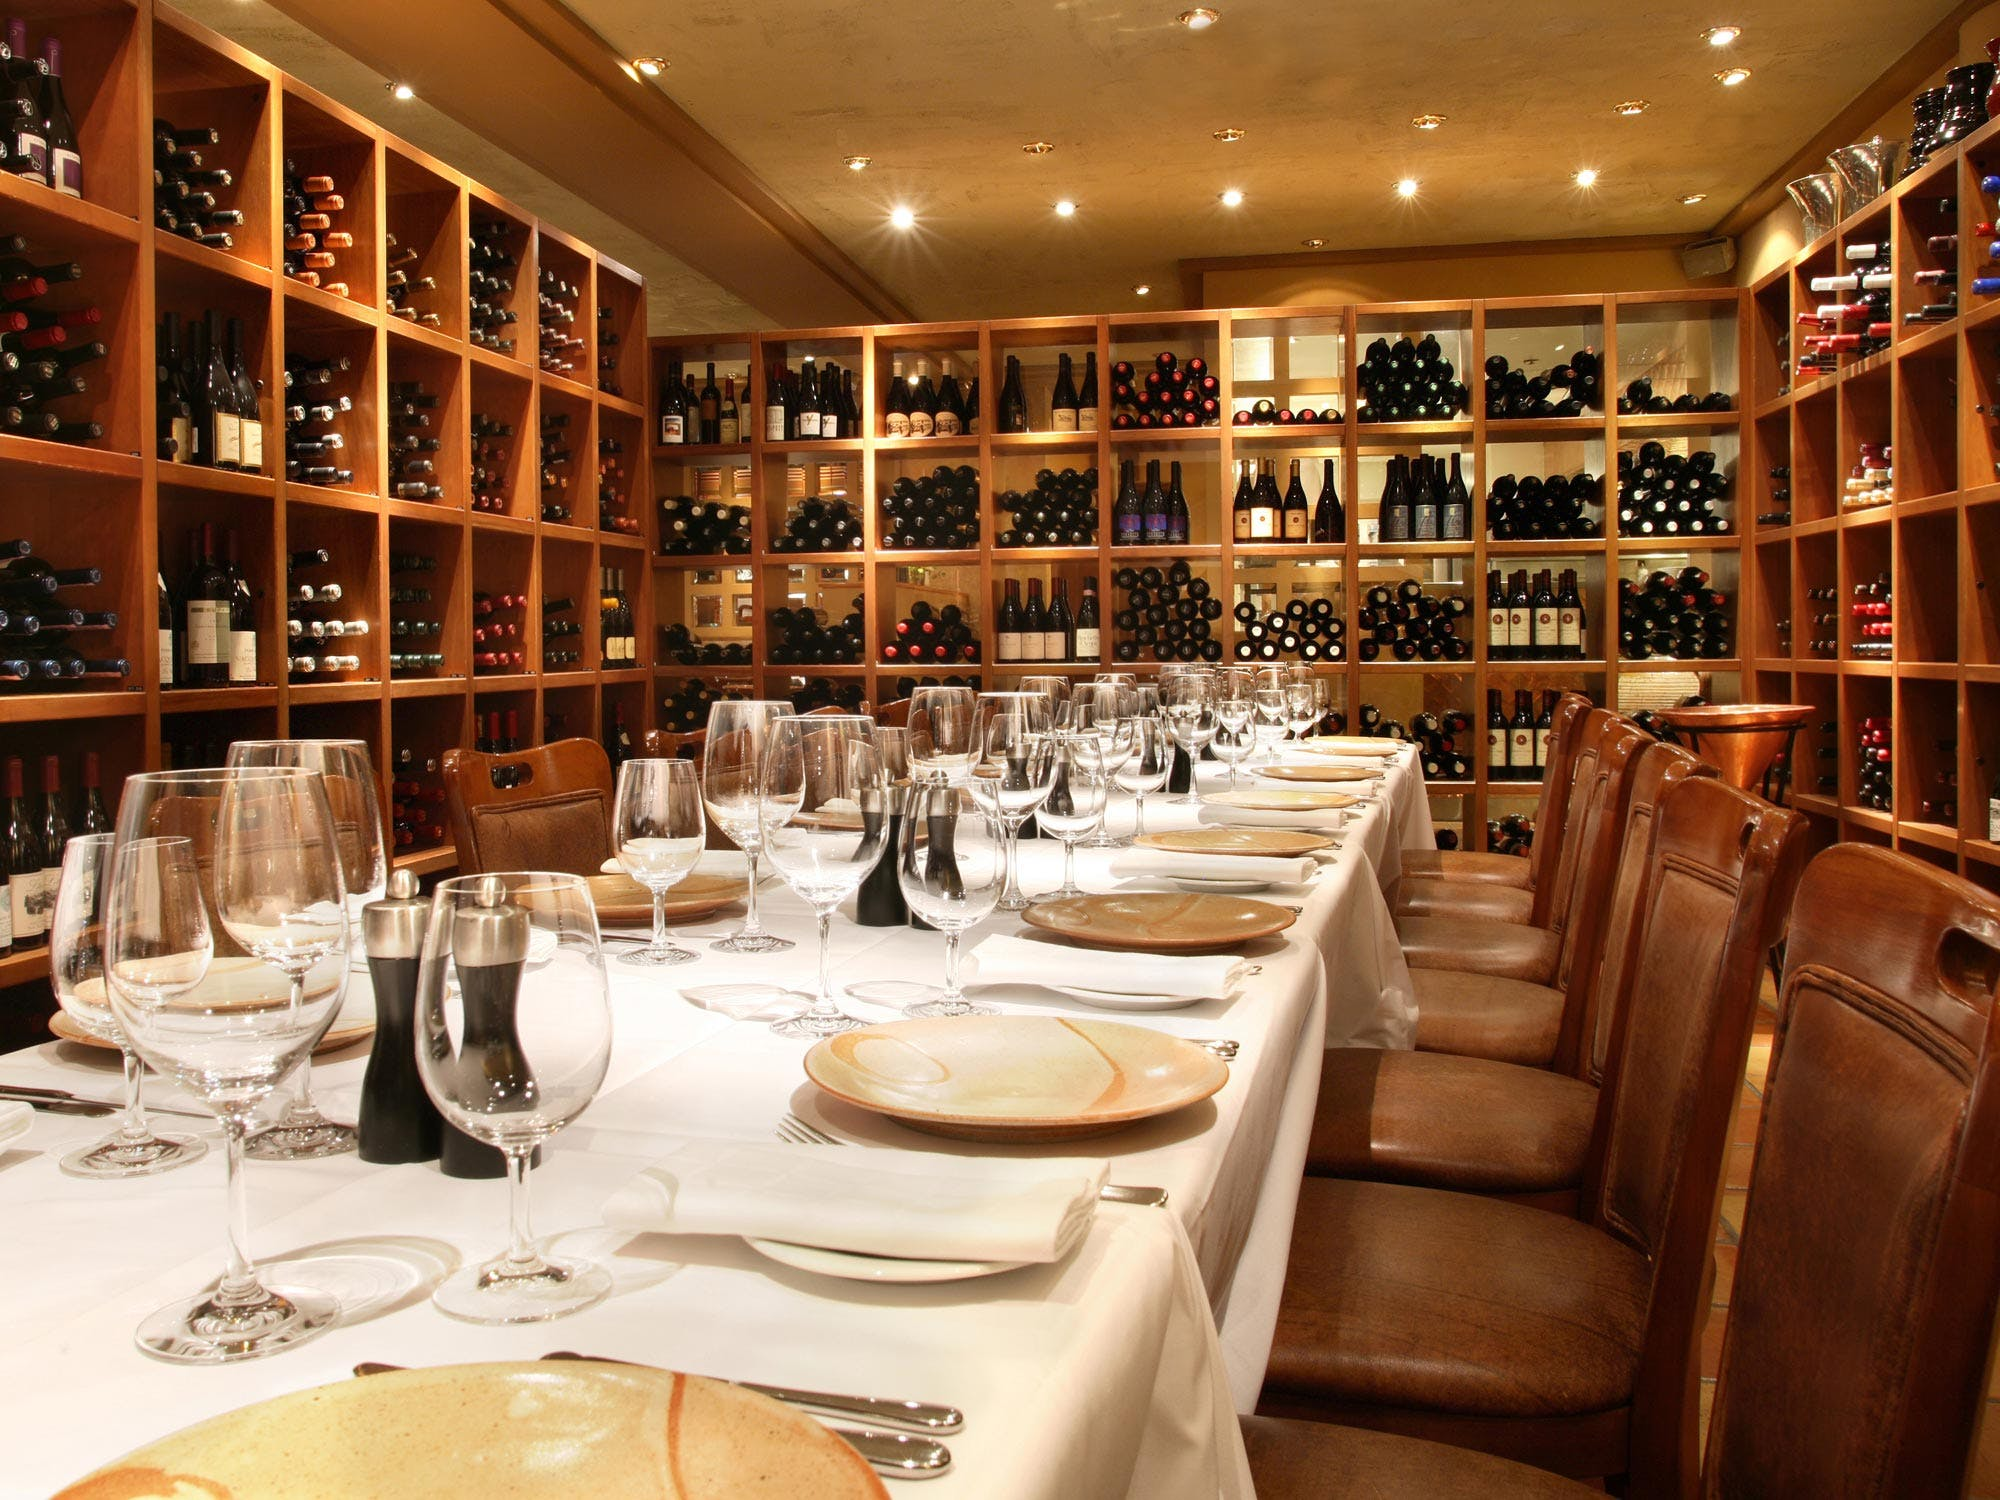 Dining inside the wine room